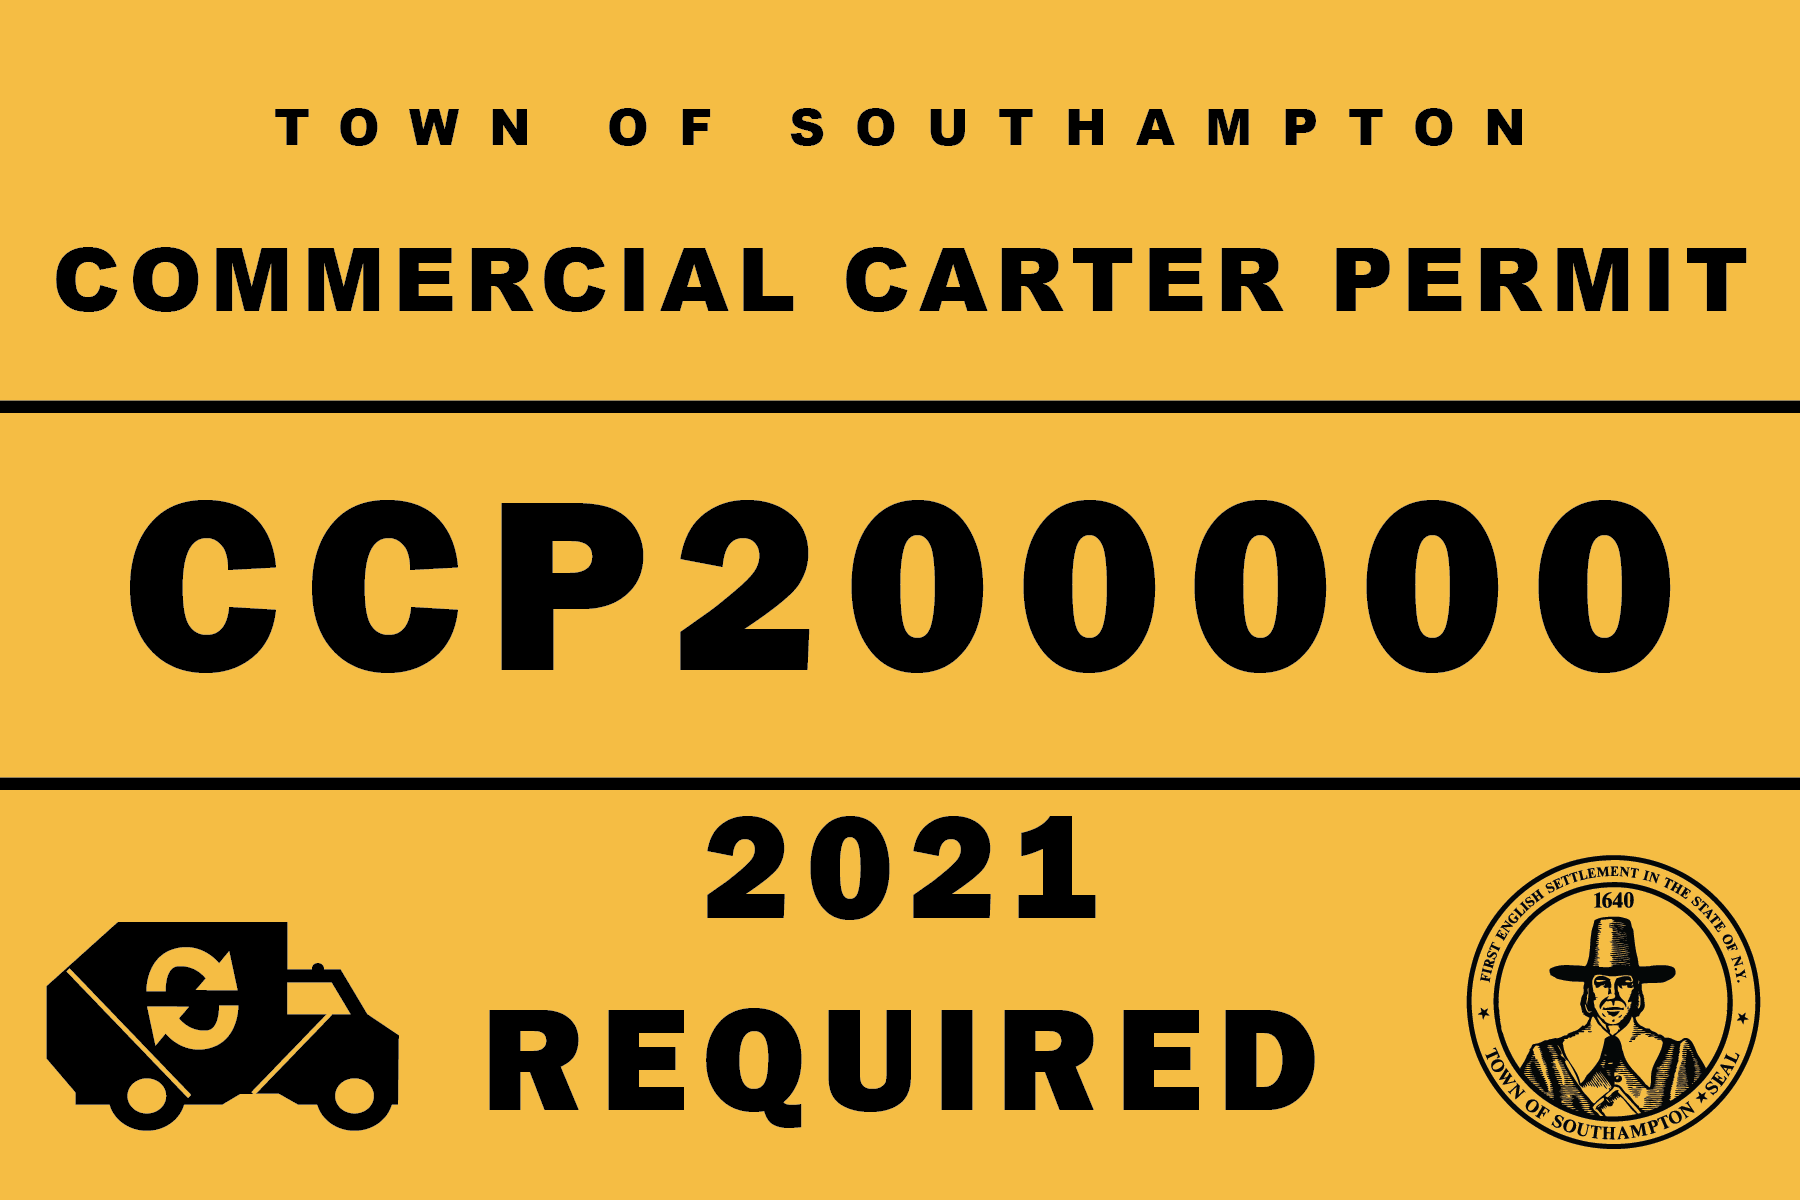 CommercialCarterSticker2021